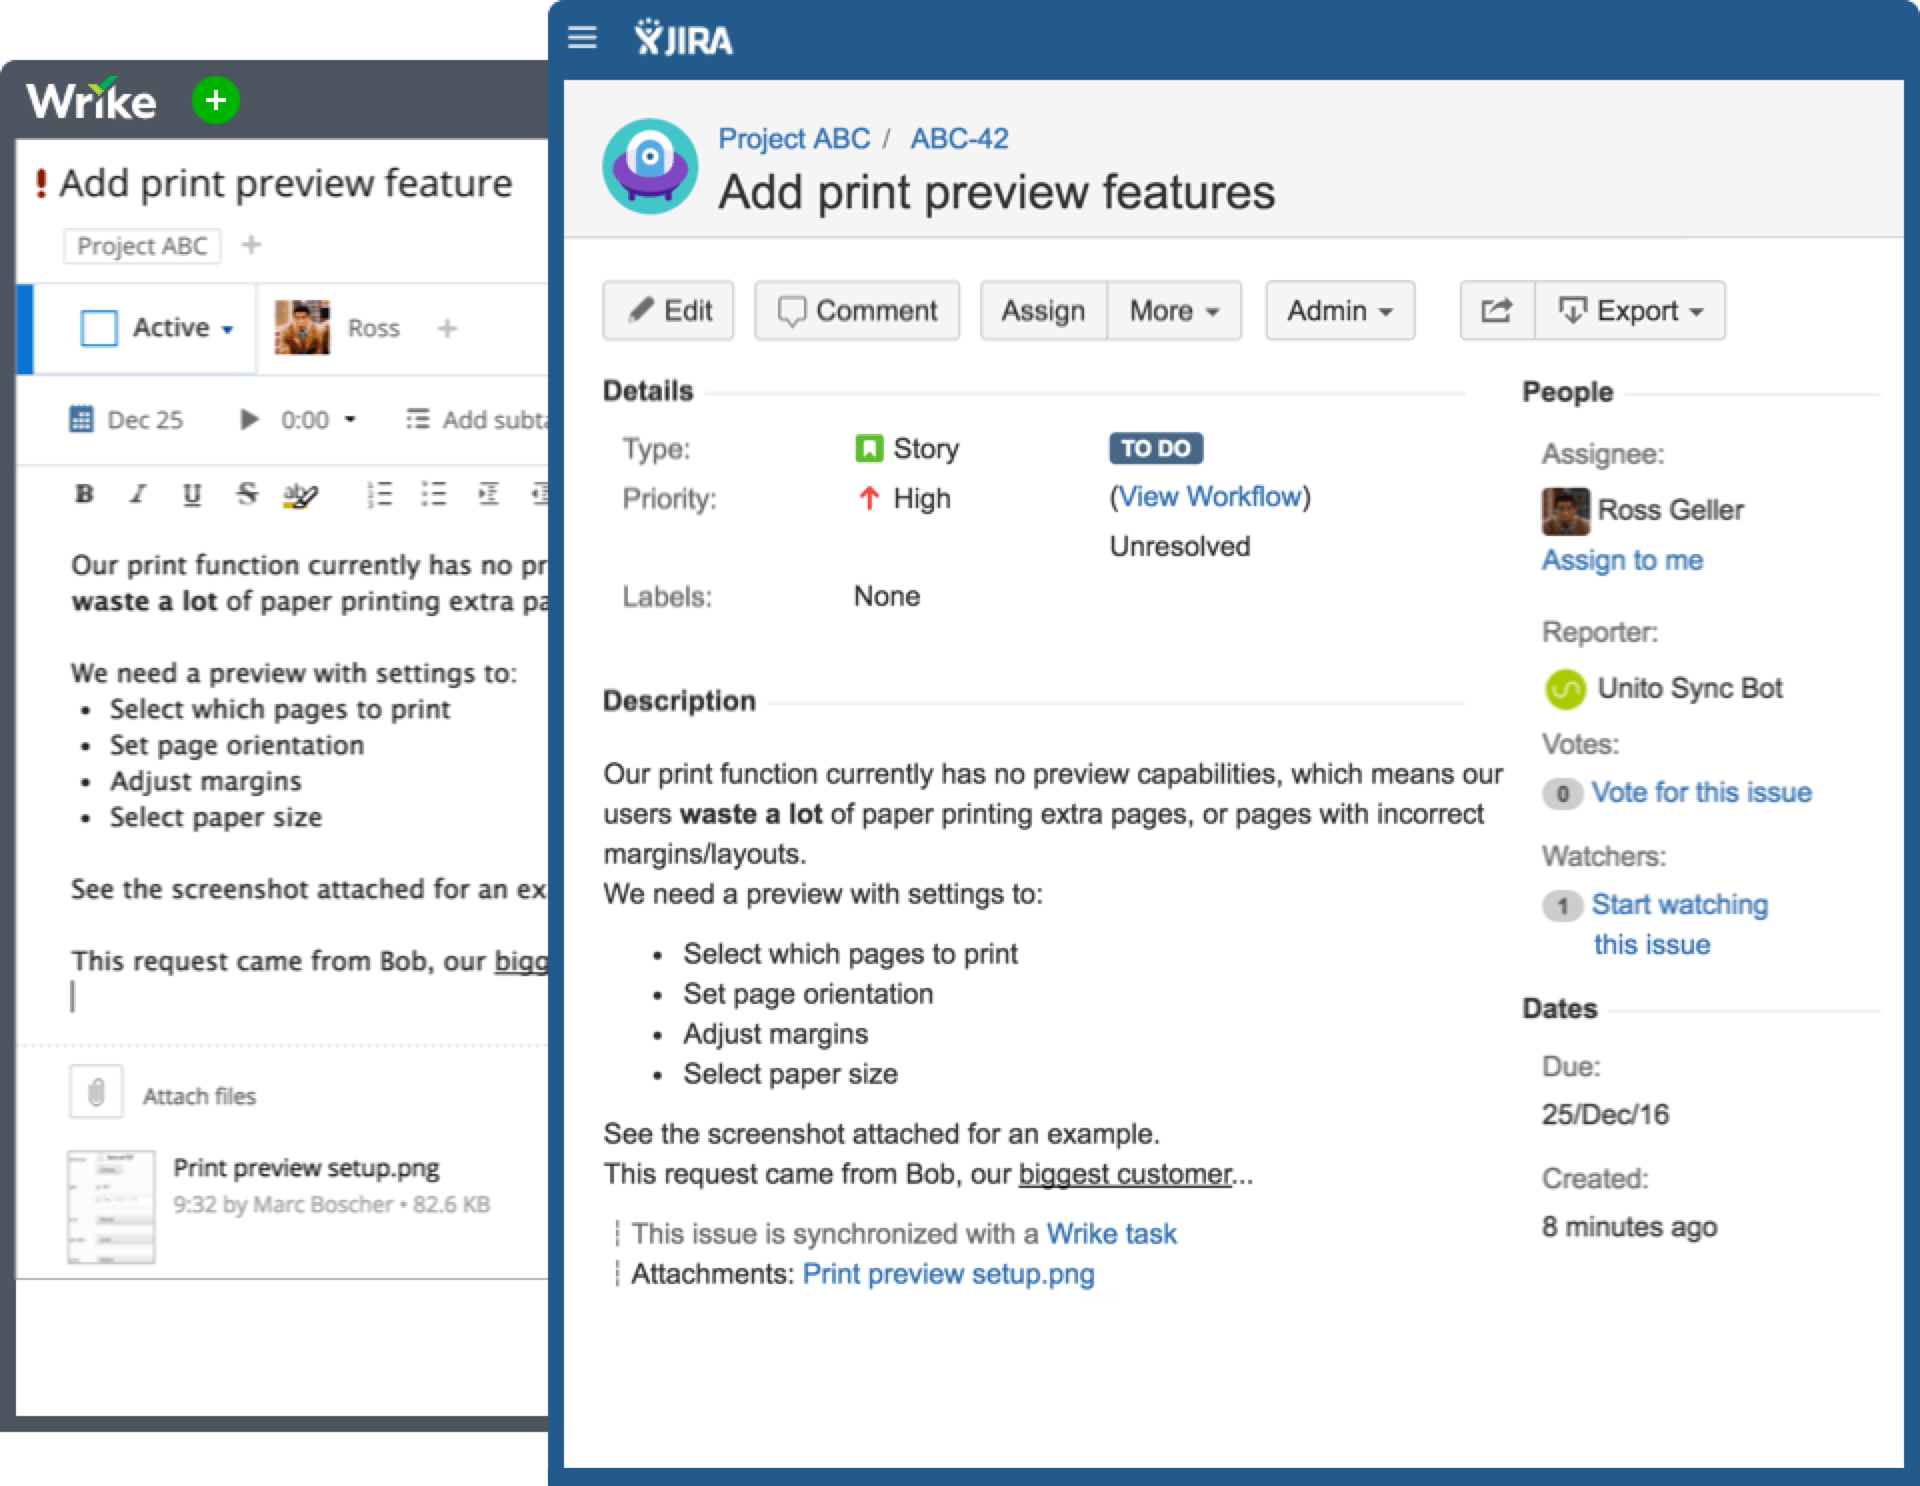 Create new issues in JIRA from within Wrike